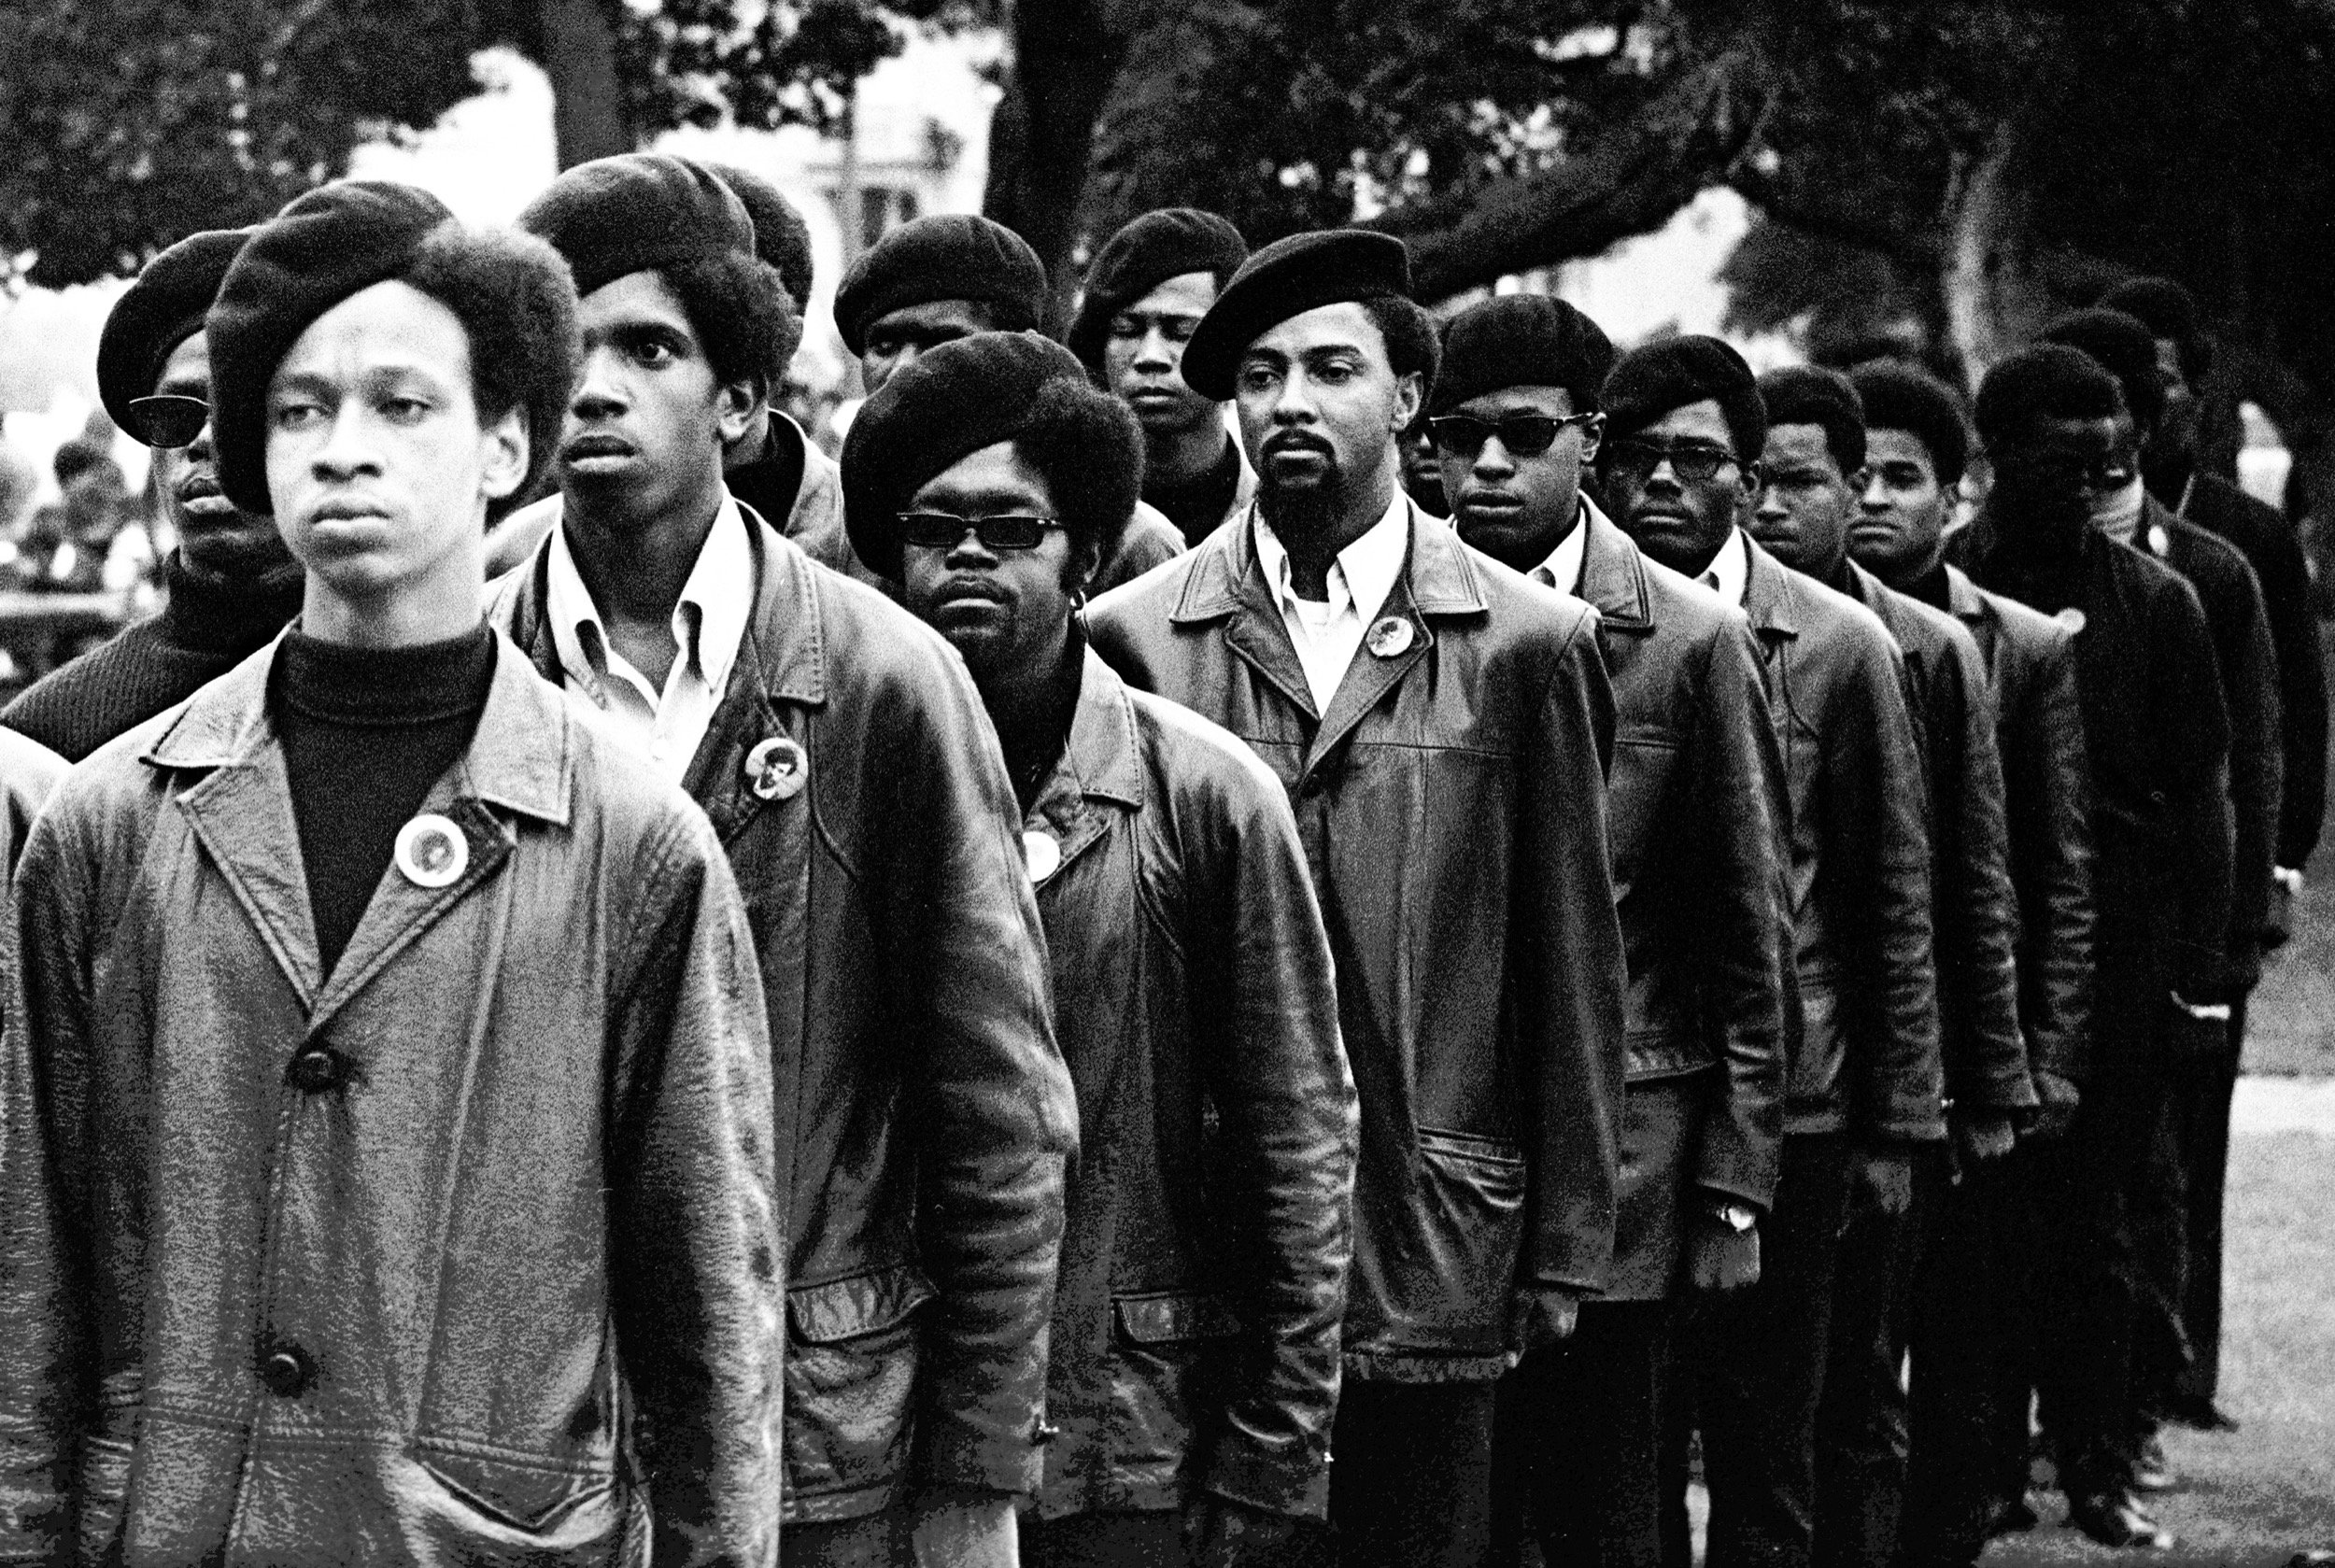 Panthers line up at a Free Huey rally in DeFremery Park, Oakland, July 28, 1968. The light-skinned man is Gregory Harrison. His brother, Oleander, was in the group that went to Sacramento.